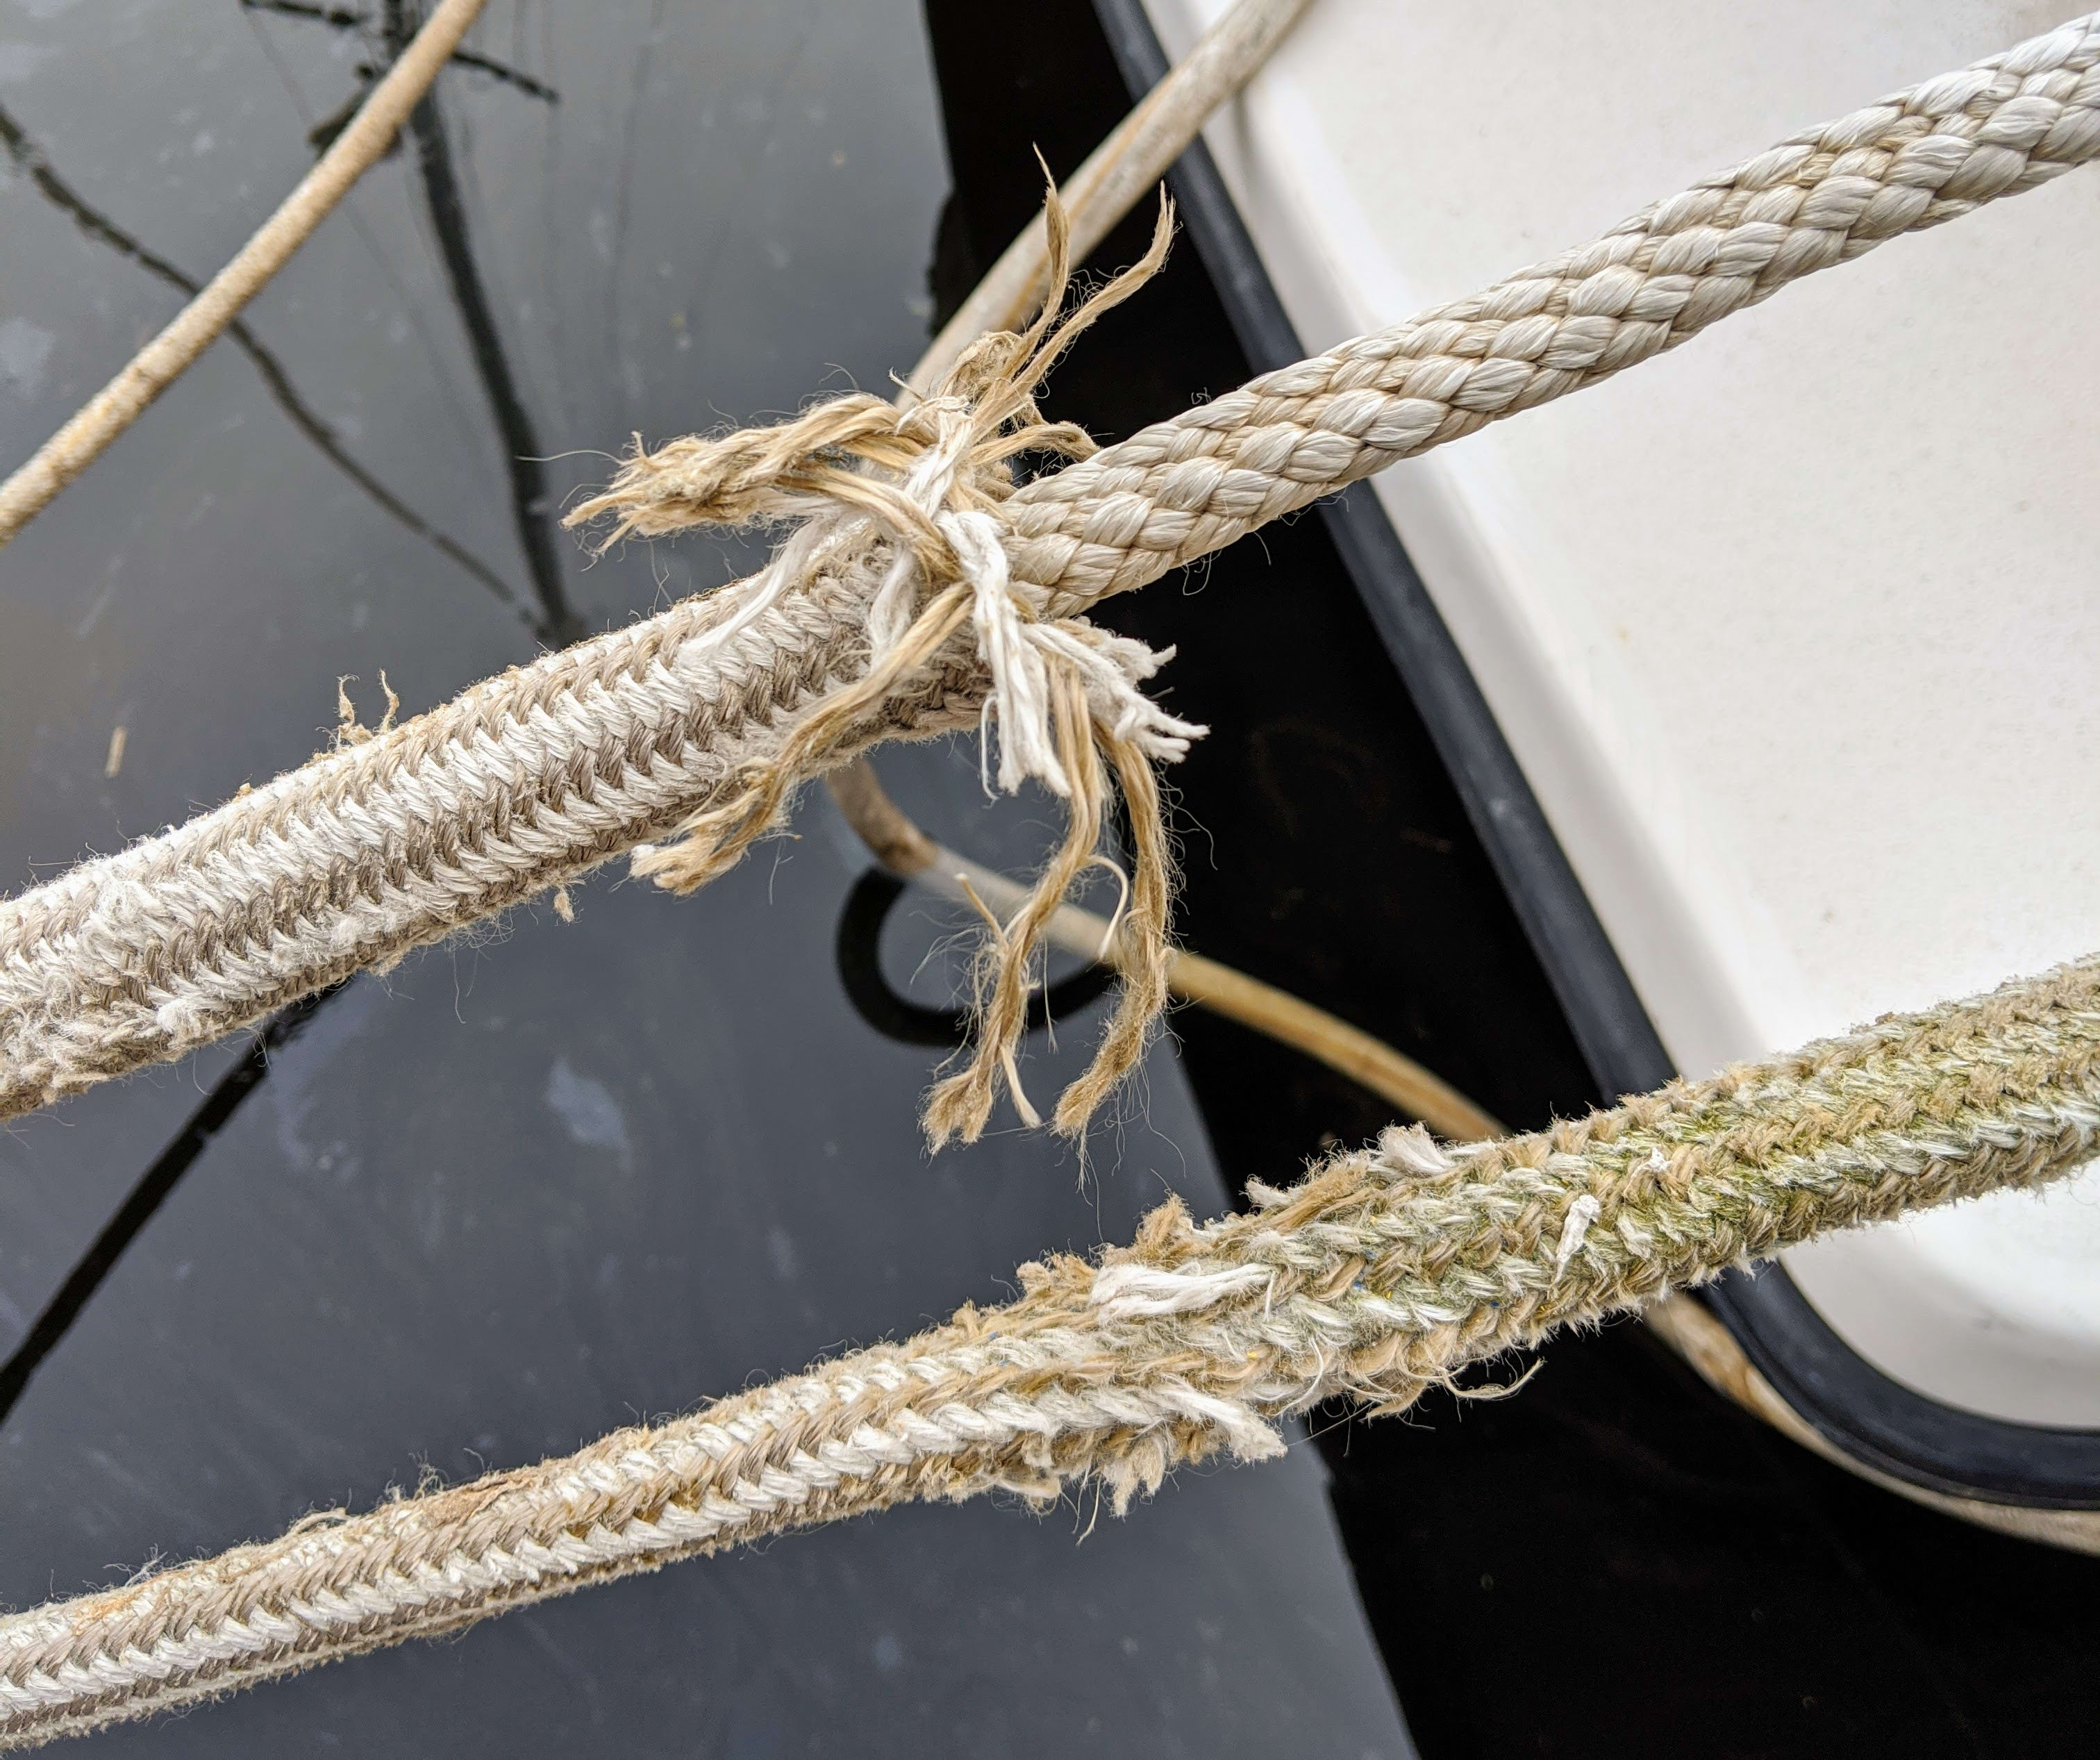 Severely chafed dock lines